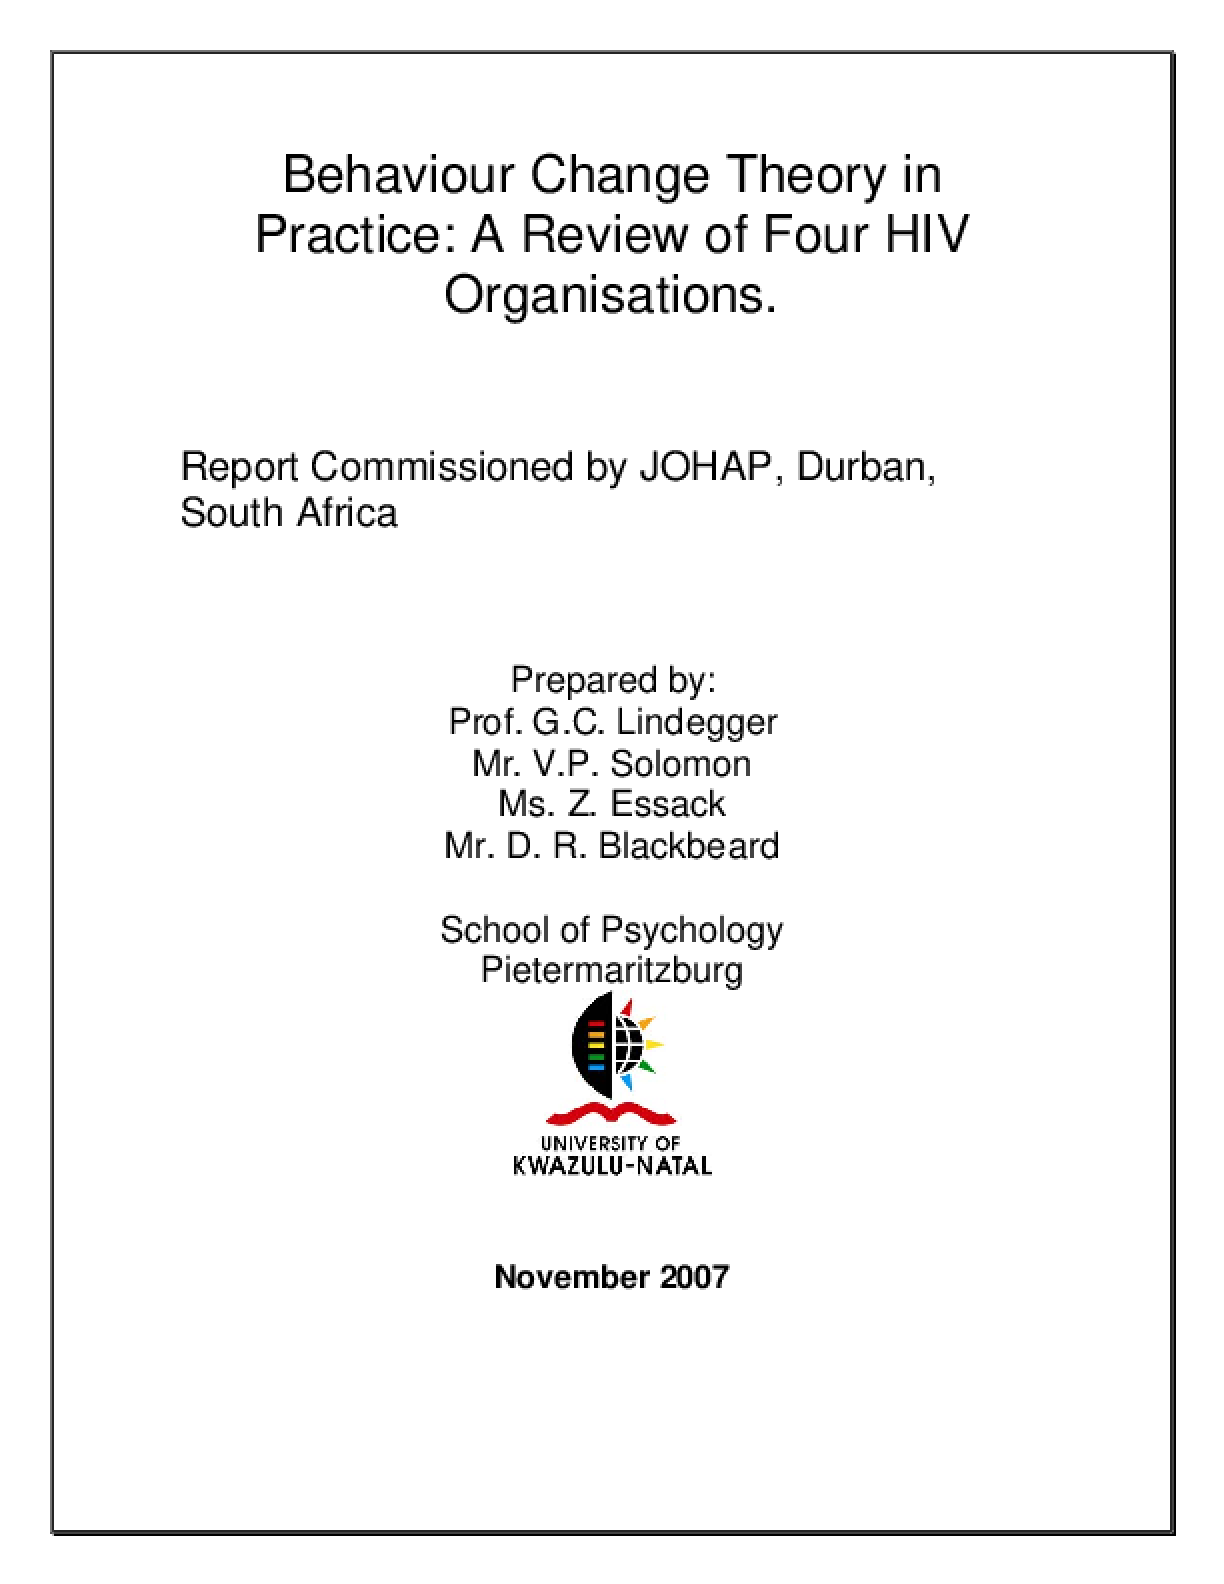 Behaviour Change Theory in Practice: A review of four HIV organisations